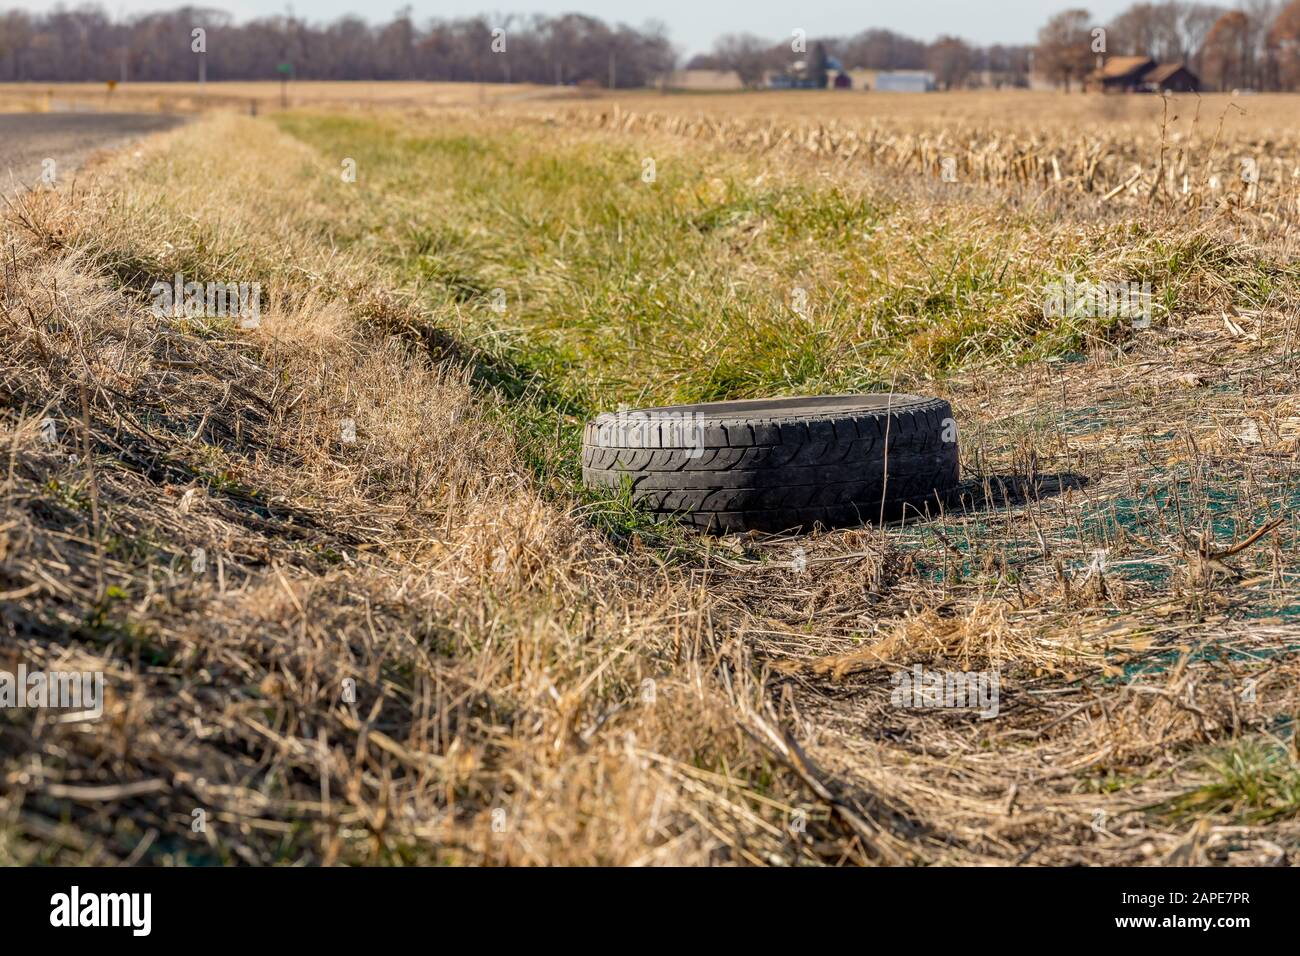 Old black rubber tire dumped in ditch along rural road. Concept of pollution, environmental damage and recycling Stock Photo